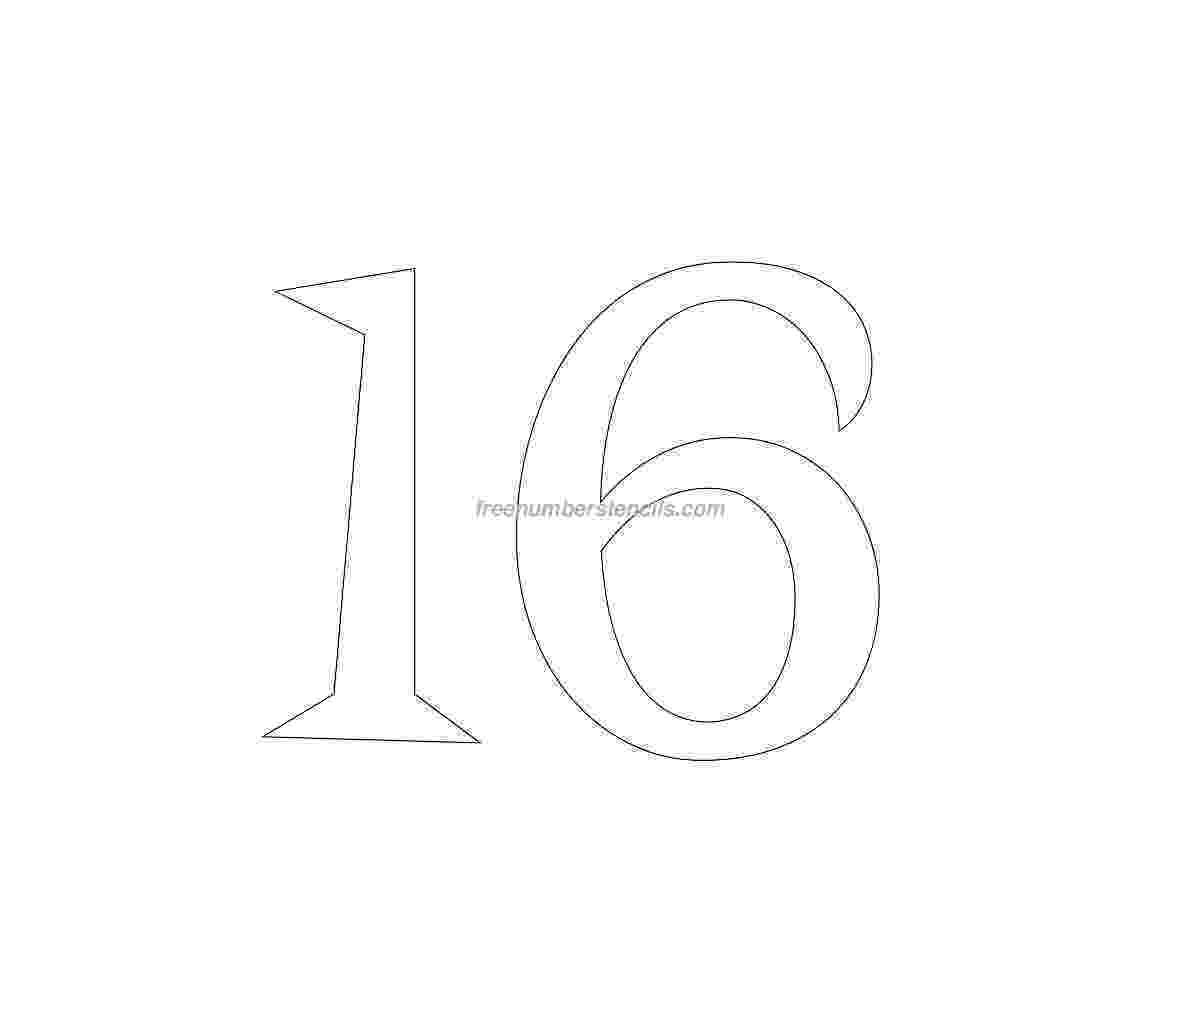 number 16 template retro number stencils archives freenumberstencilscom template 16 number